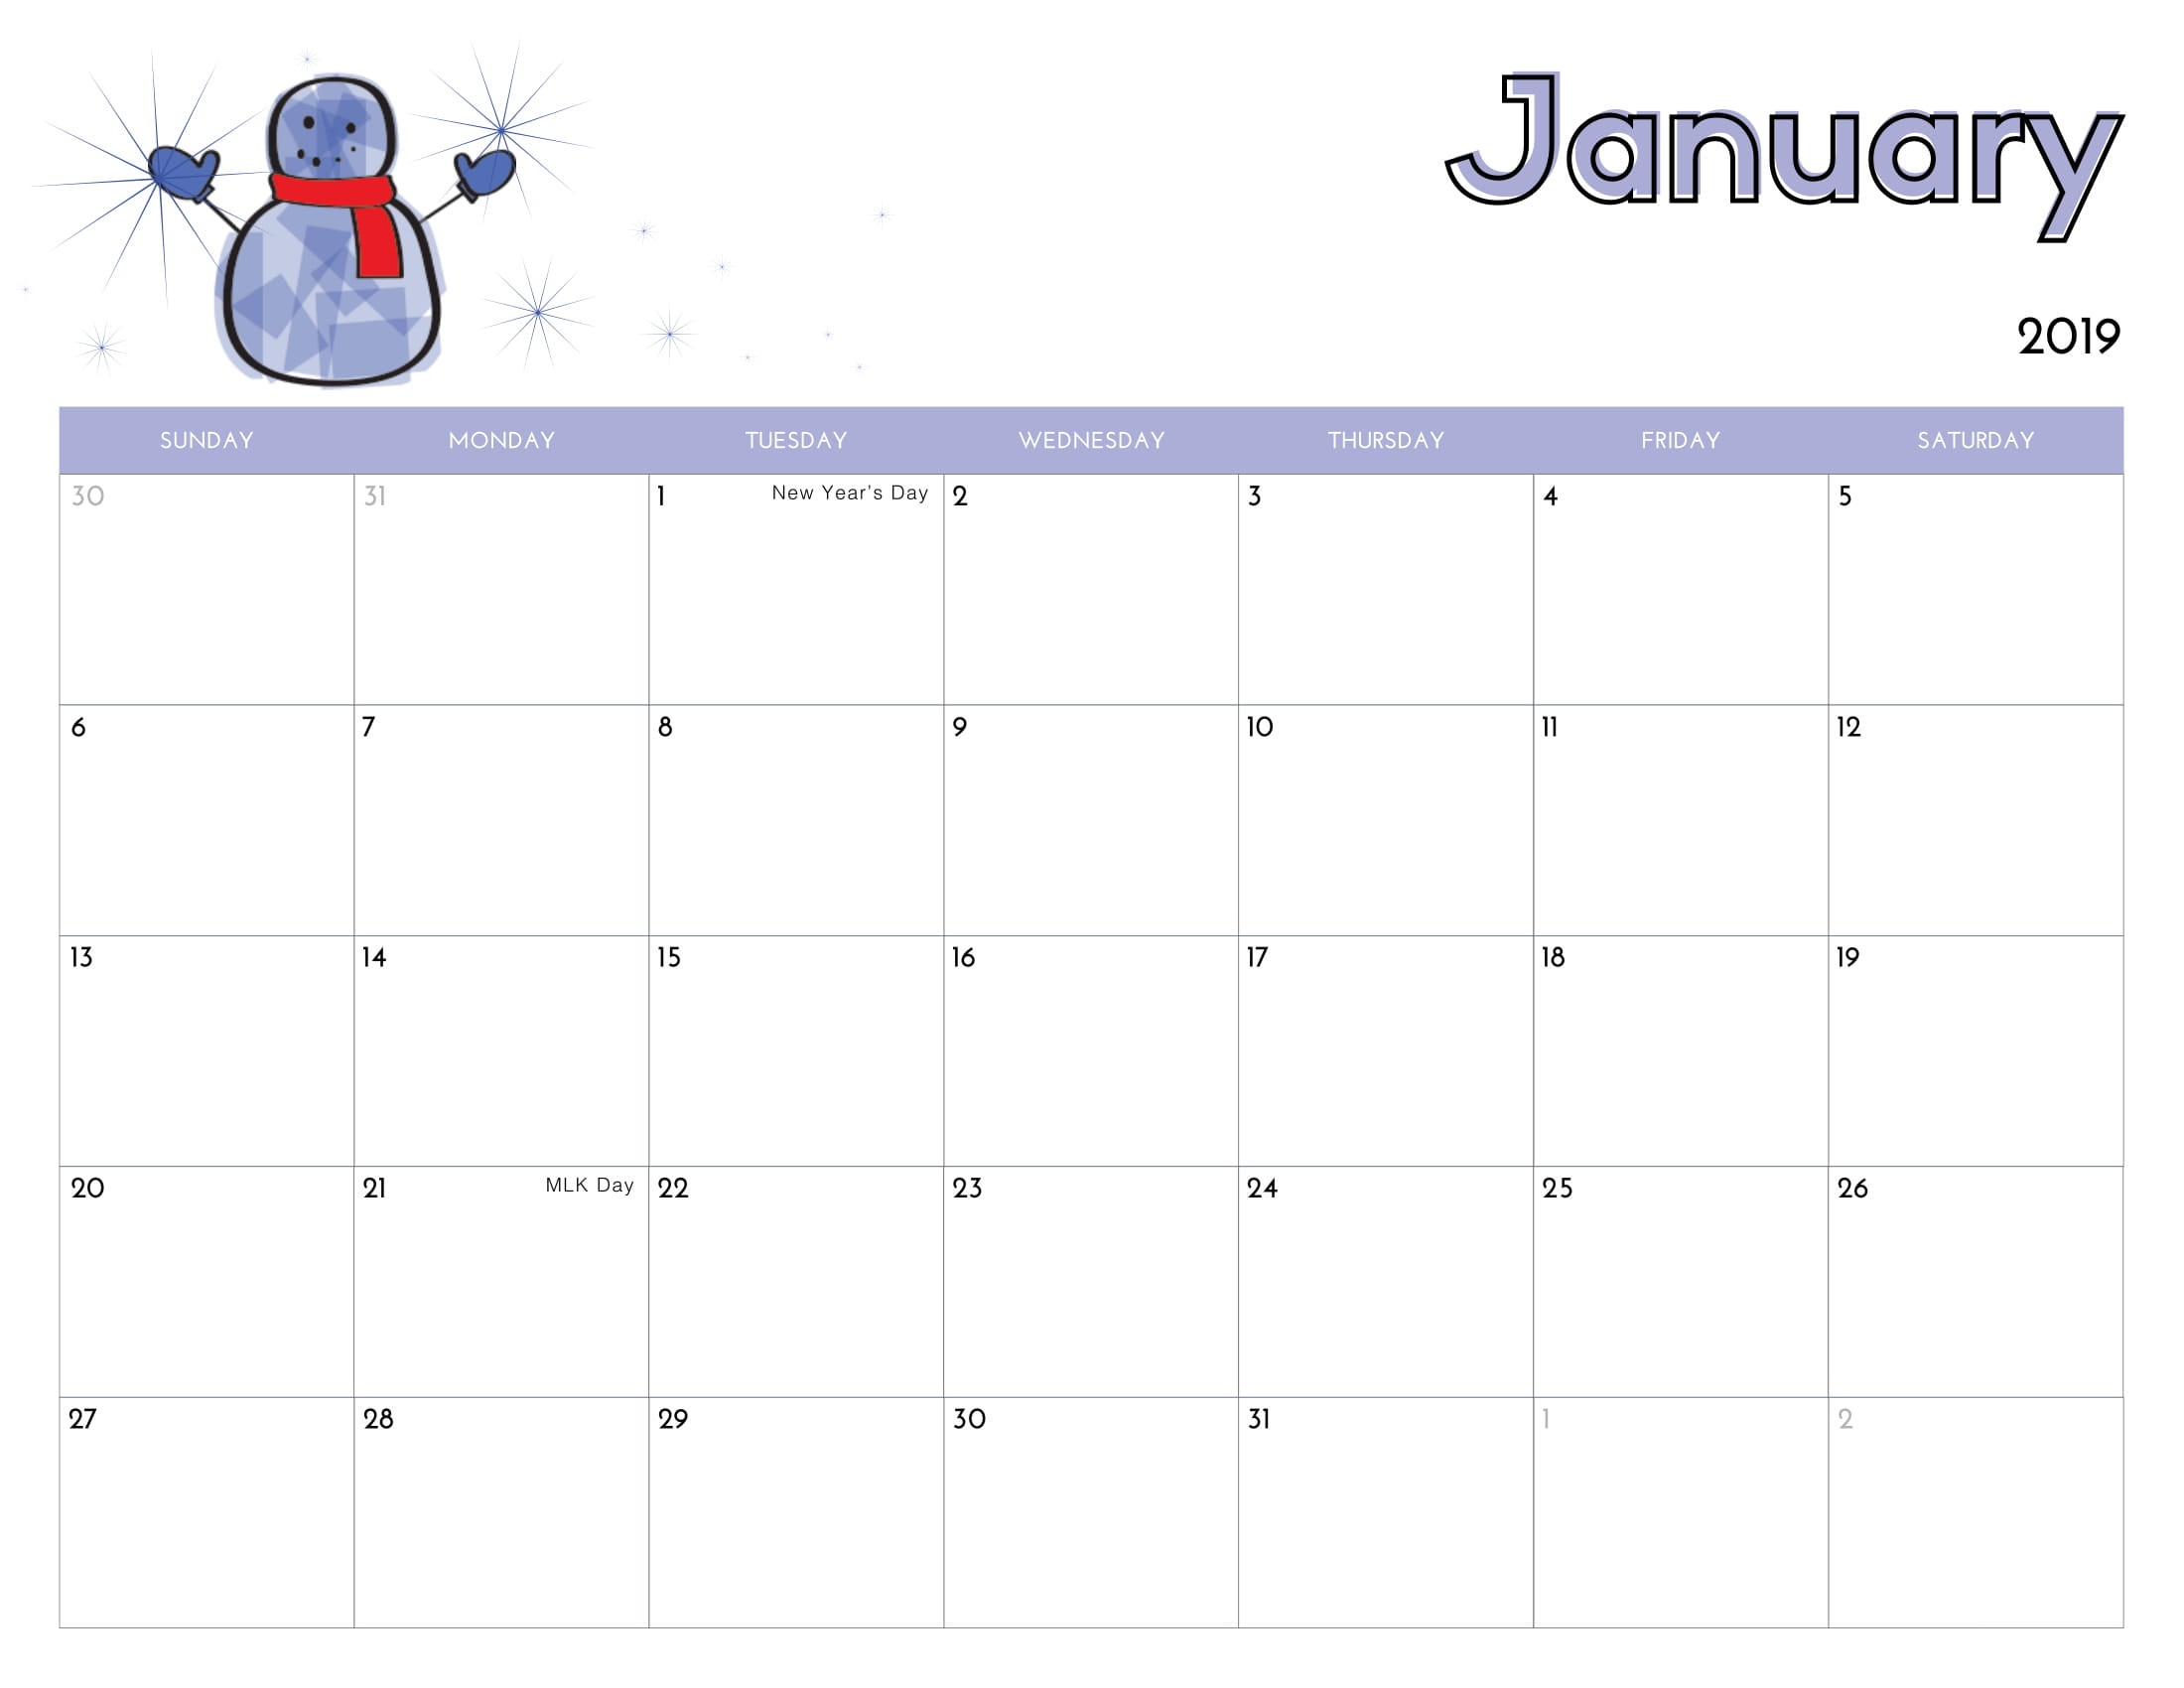 Cute Calendar for January 2019